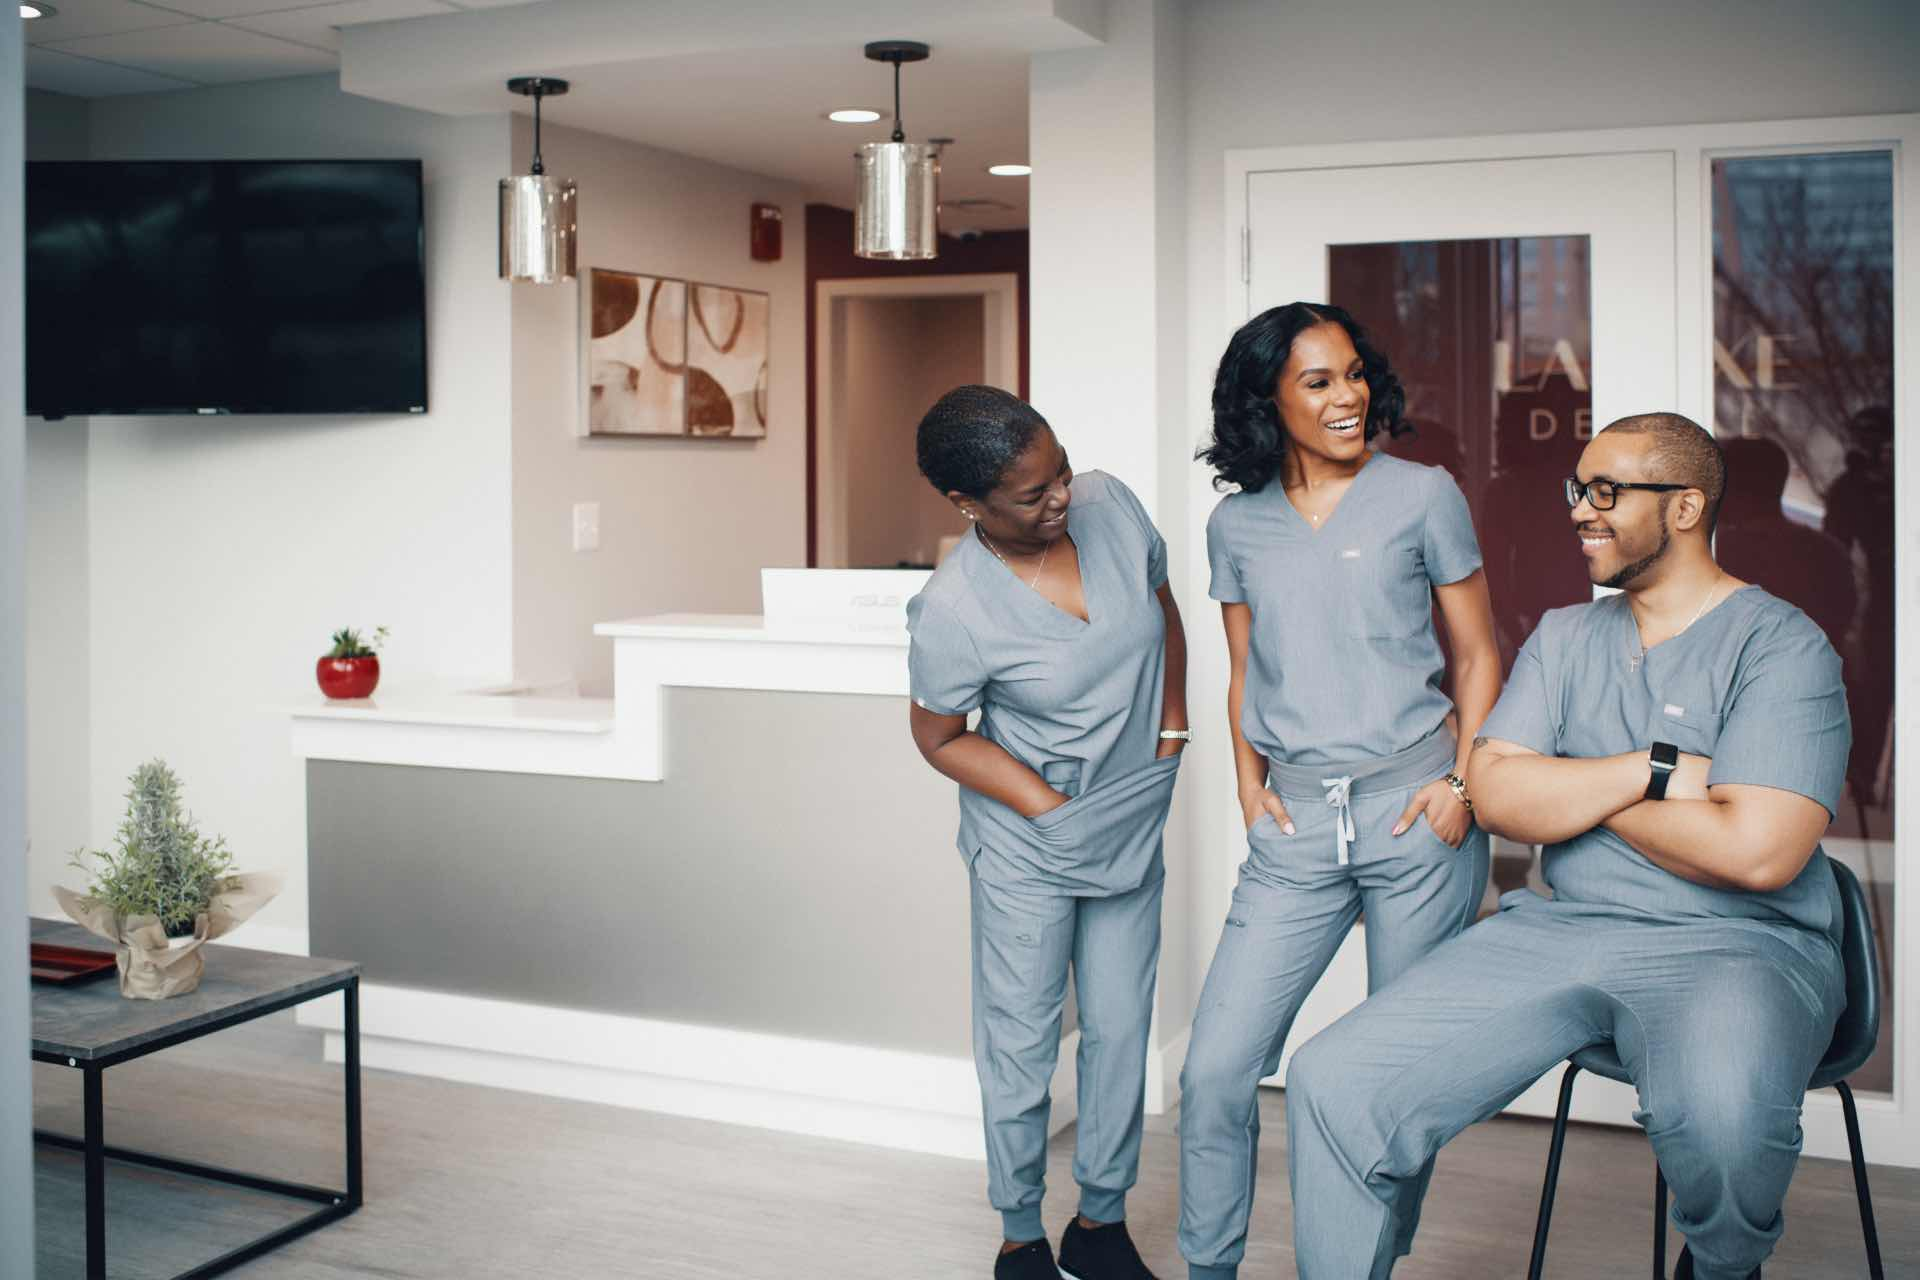 Photo of the La Luxe Dental team smiling